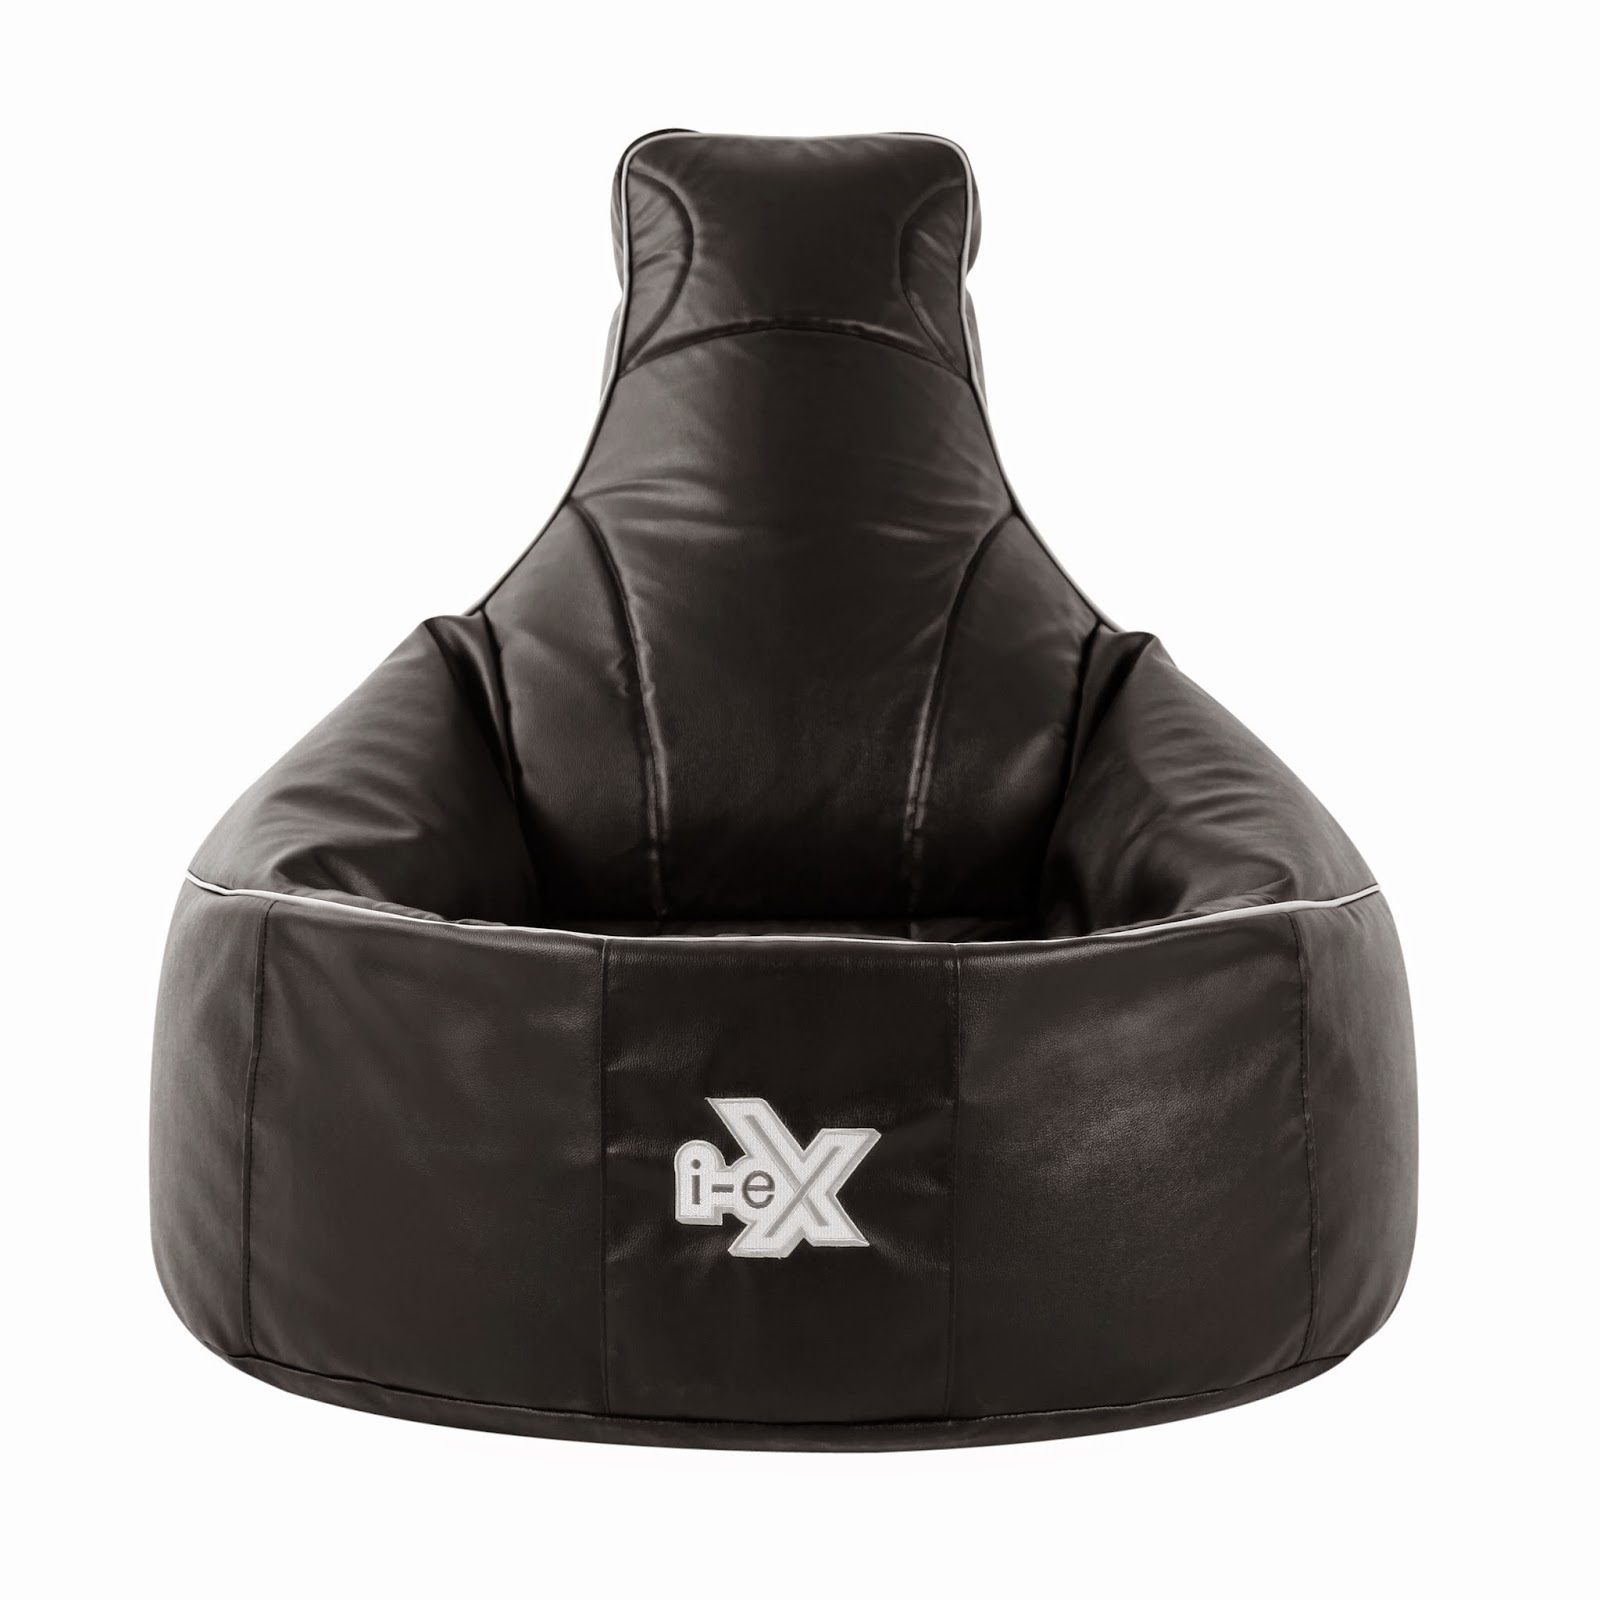 REVIEW ieX Bean Bag Gaming Chair  The Test Pit